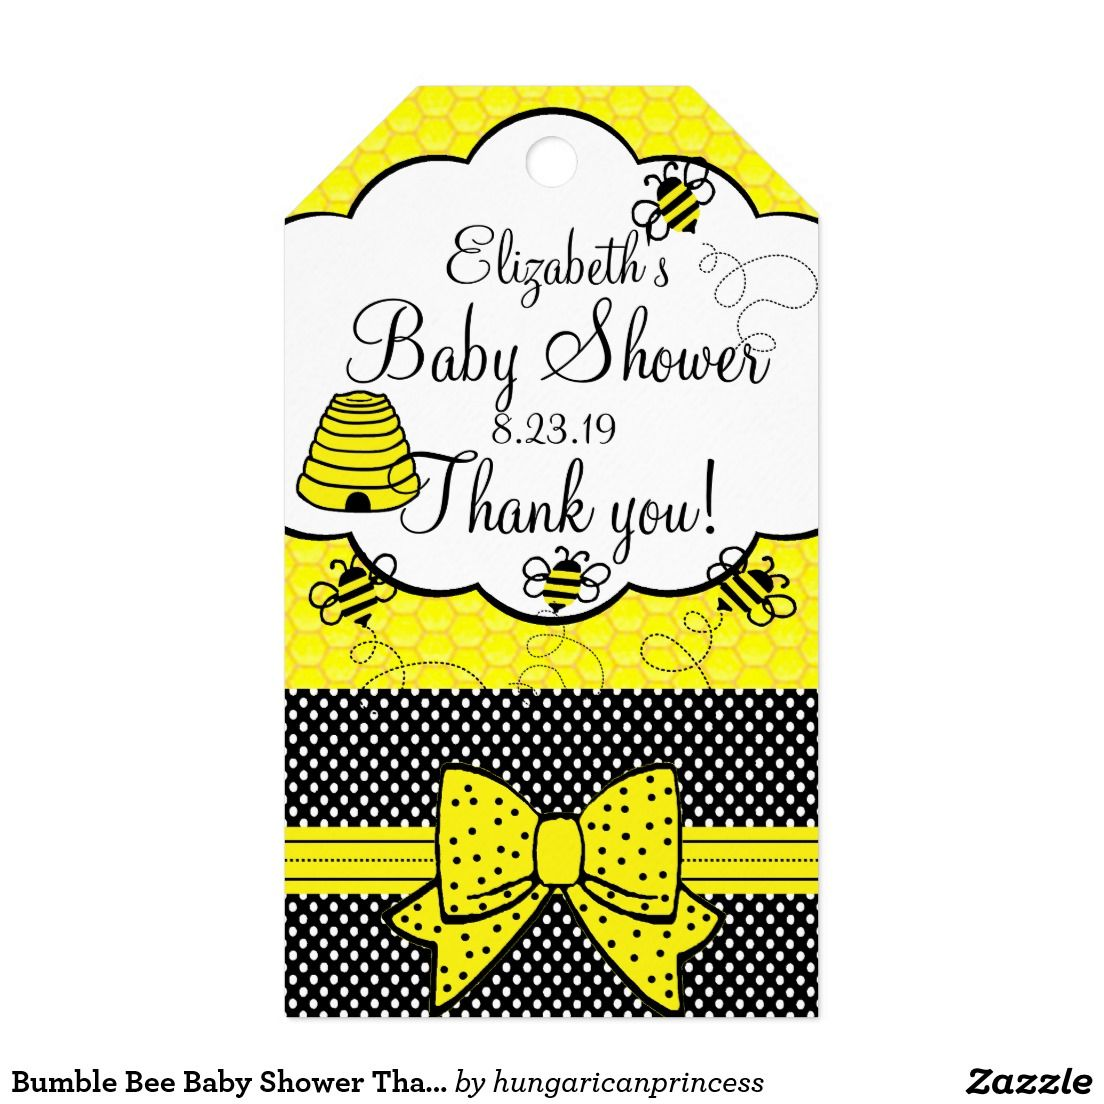 Bumble Bee Baby Shower Thank You Gift Tags